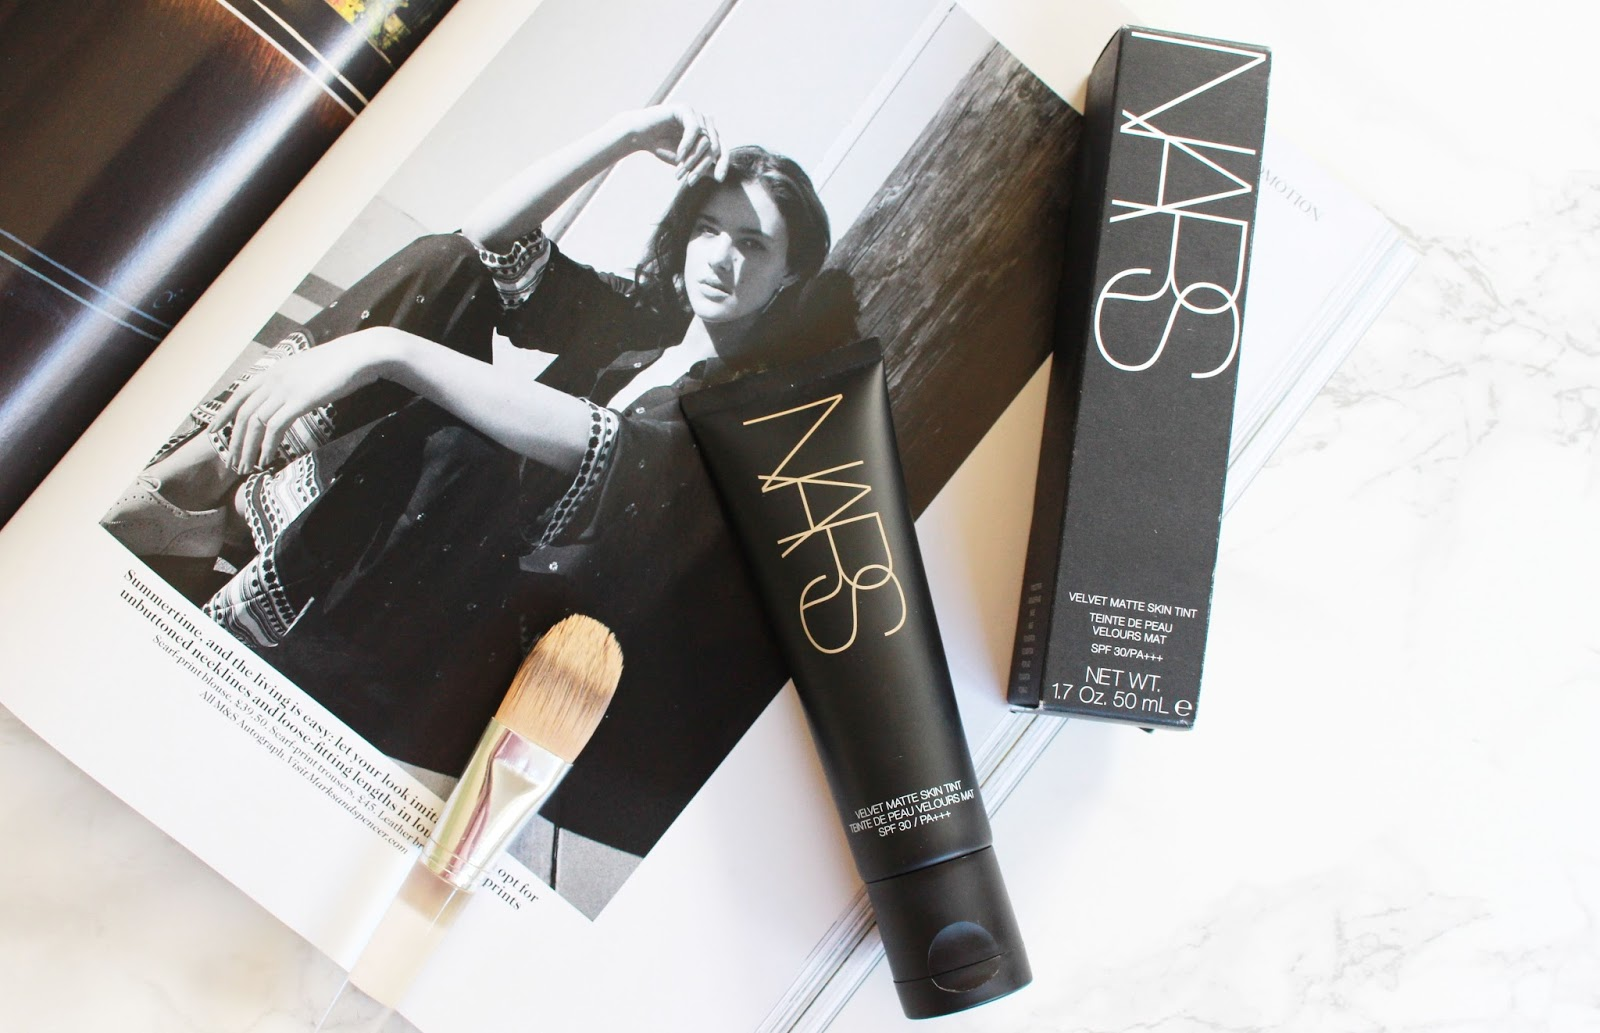 NARS VELVET MATTE SKIN TINT FOUNDATION, NARS, NARS FOUNDATION REVIEW, NARS SKIN TINT REVIEW, FOUNDATIONS FOR OILY SKIN REVIEW, BEAUTY REVIEW, NARS BEAUTY REVIEW